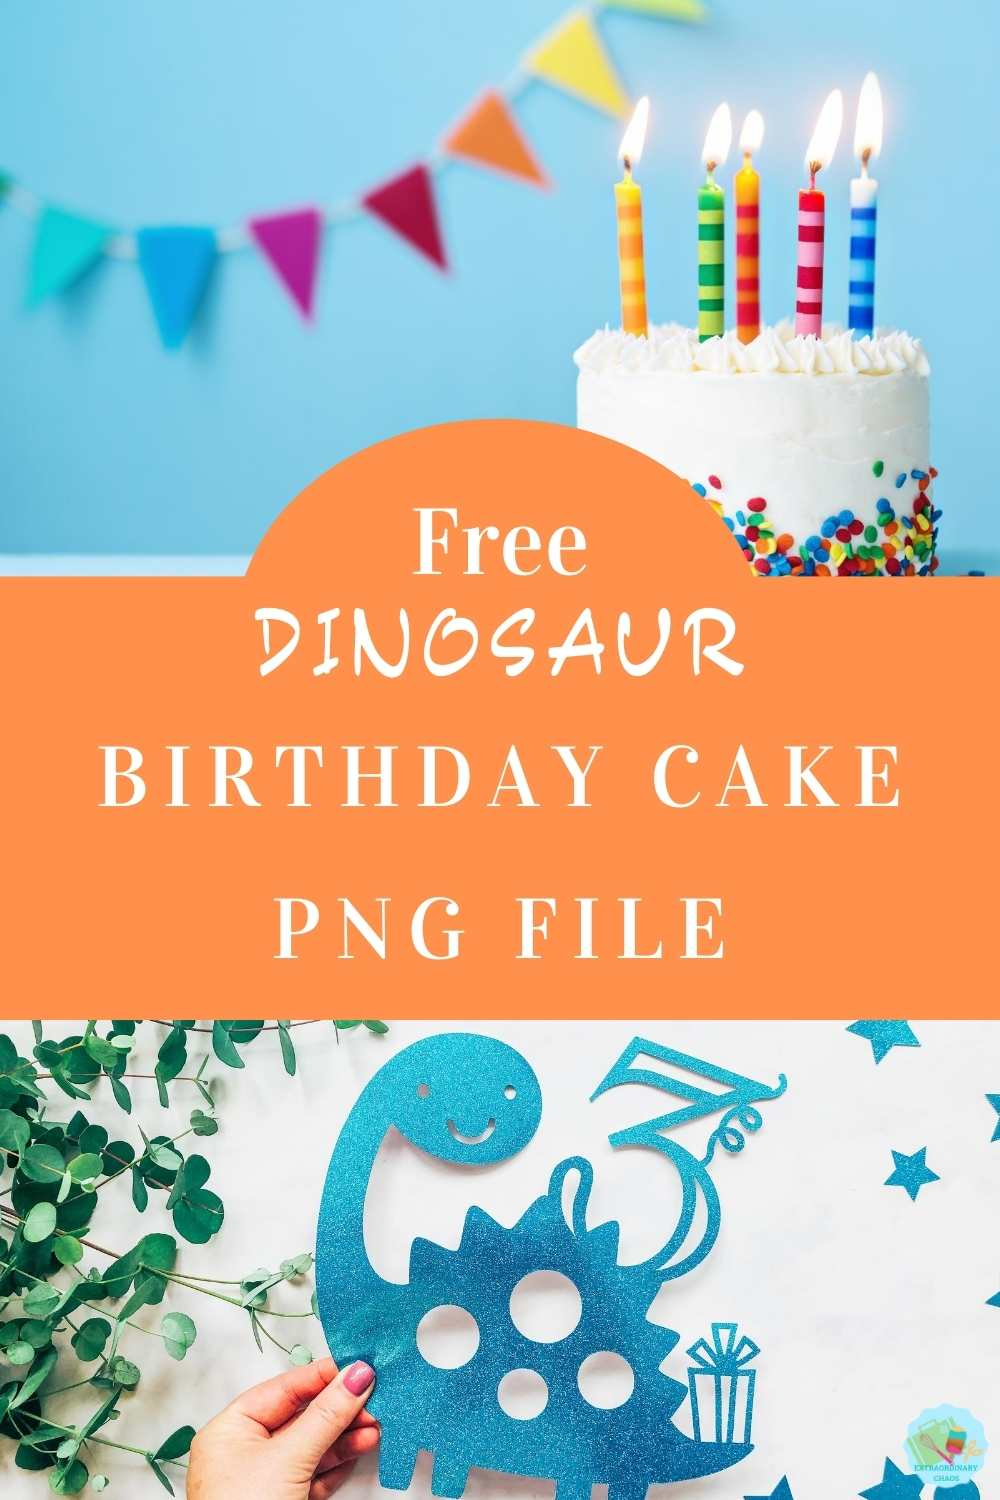 Free Dinosaur Cake Topper PNG File For Kids Themed Birthday Parties